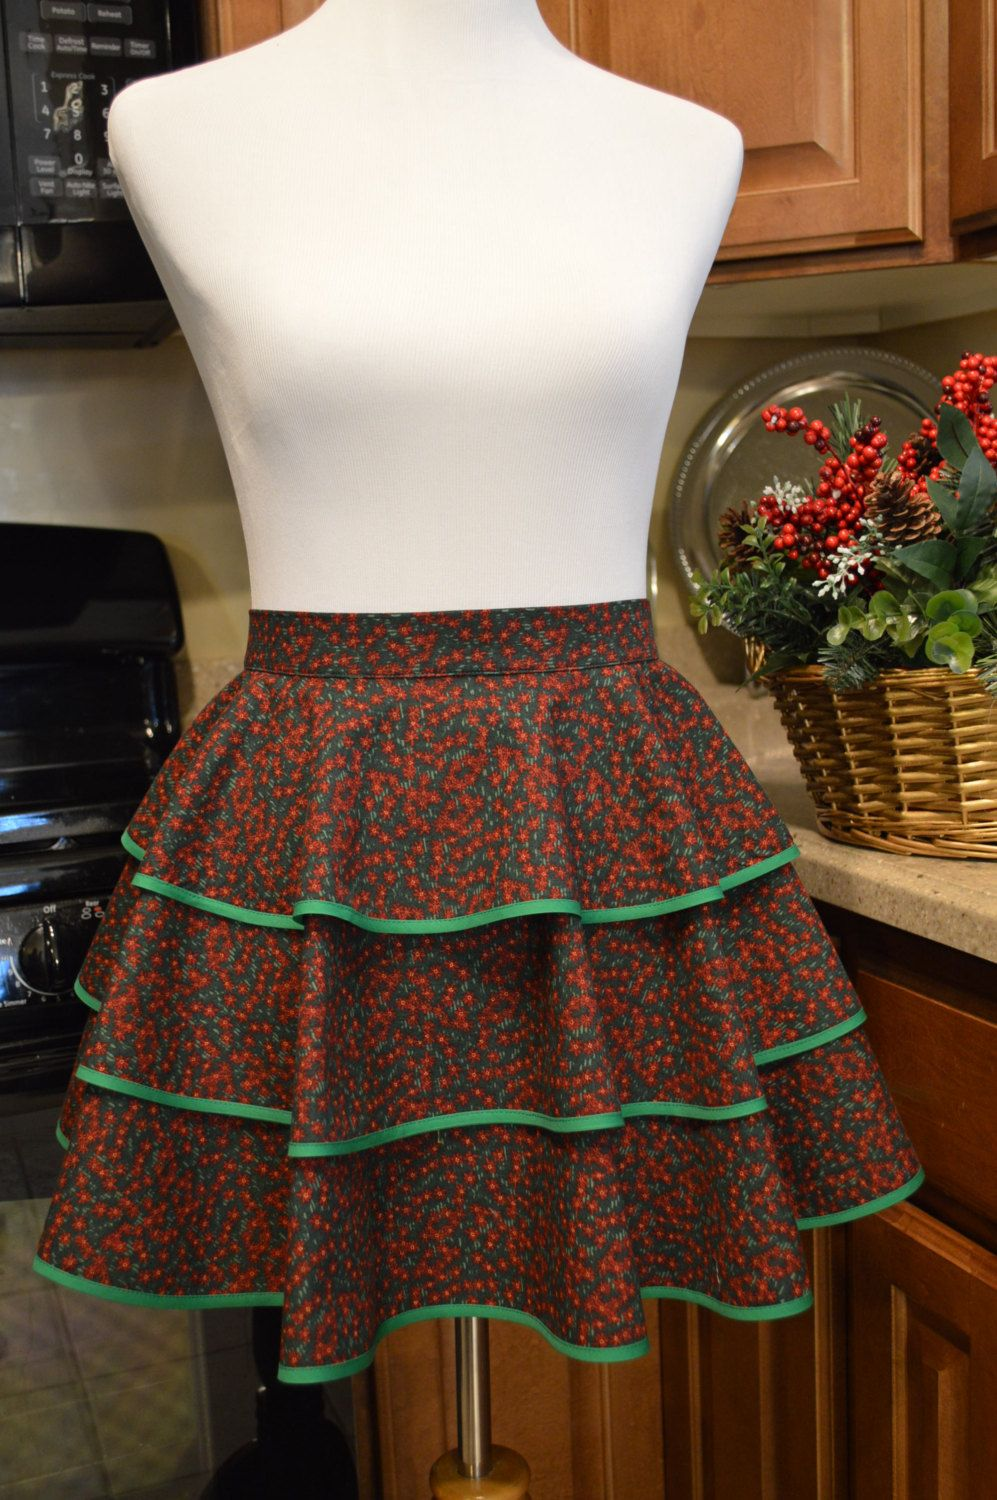 Christmas Half Apron Vintage Style Apron, 3 Tiered Apron, Hostess Apron Size Small 10 - 12 Ready to Ship by NancysNeedfulThings on Etsy